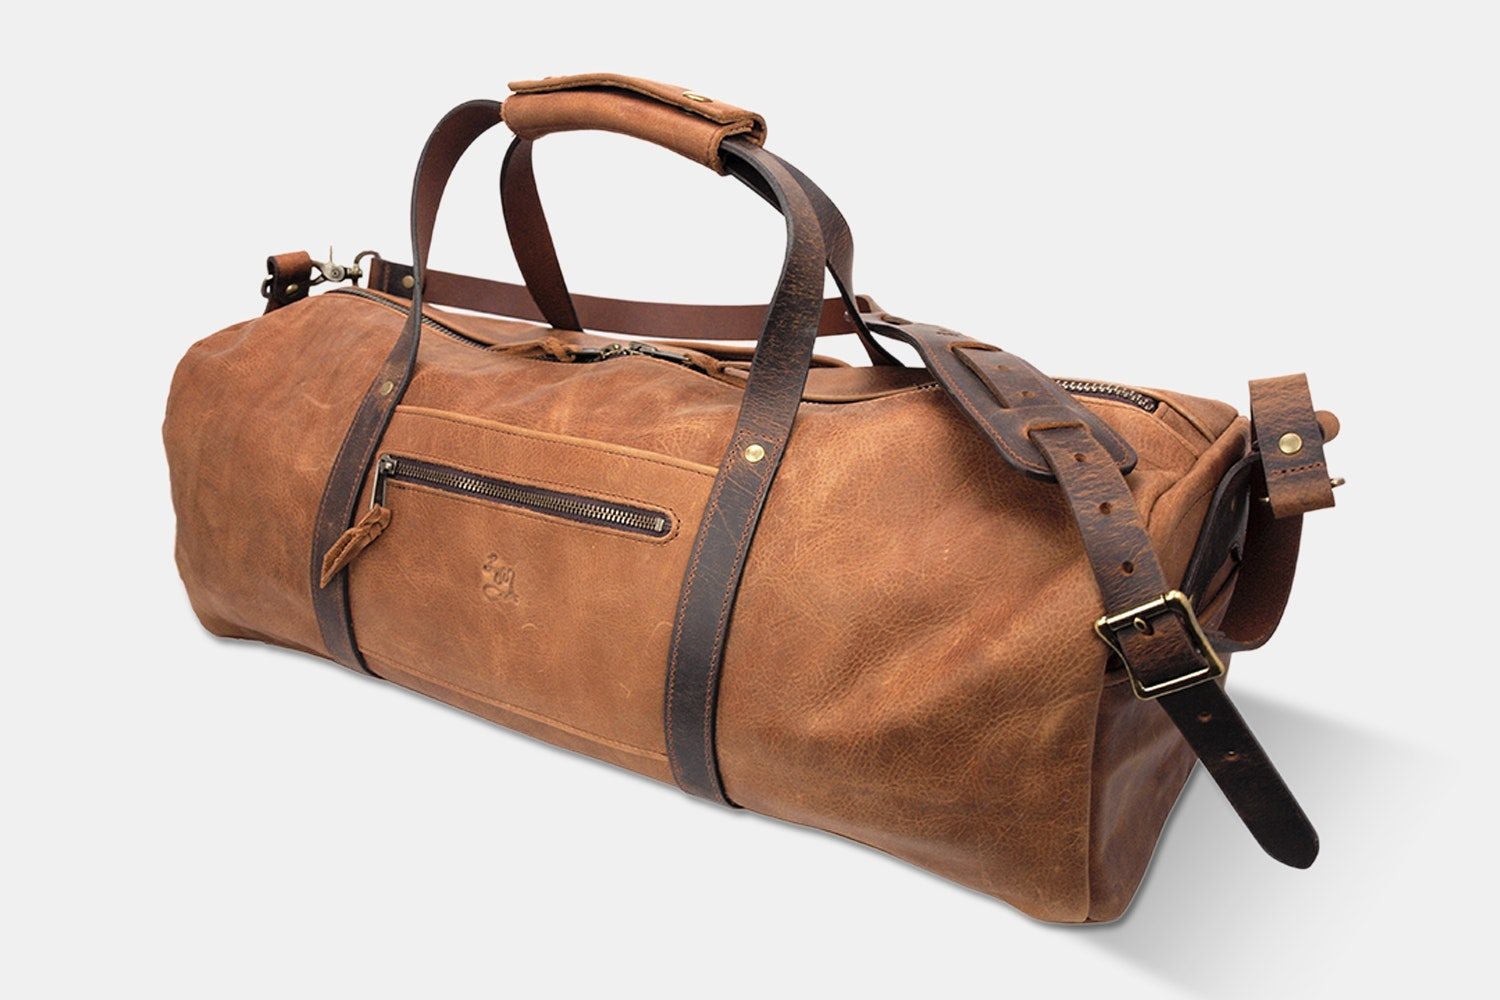 LM Products Drayton Leather Duffel Bag